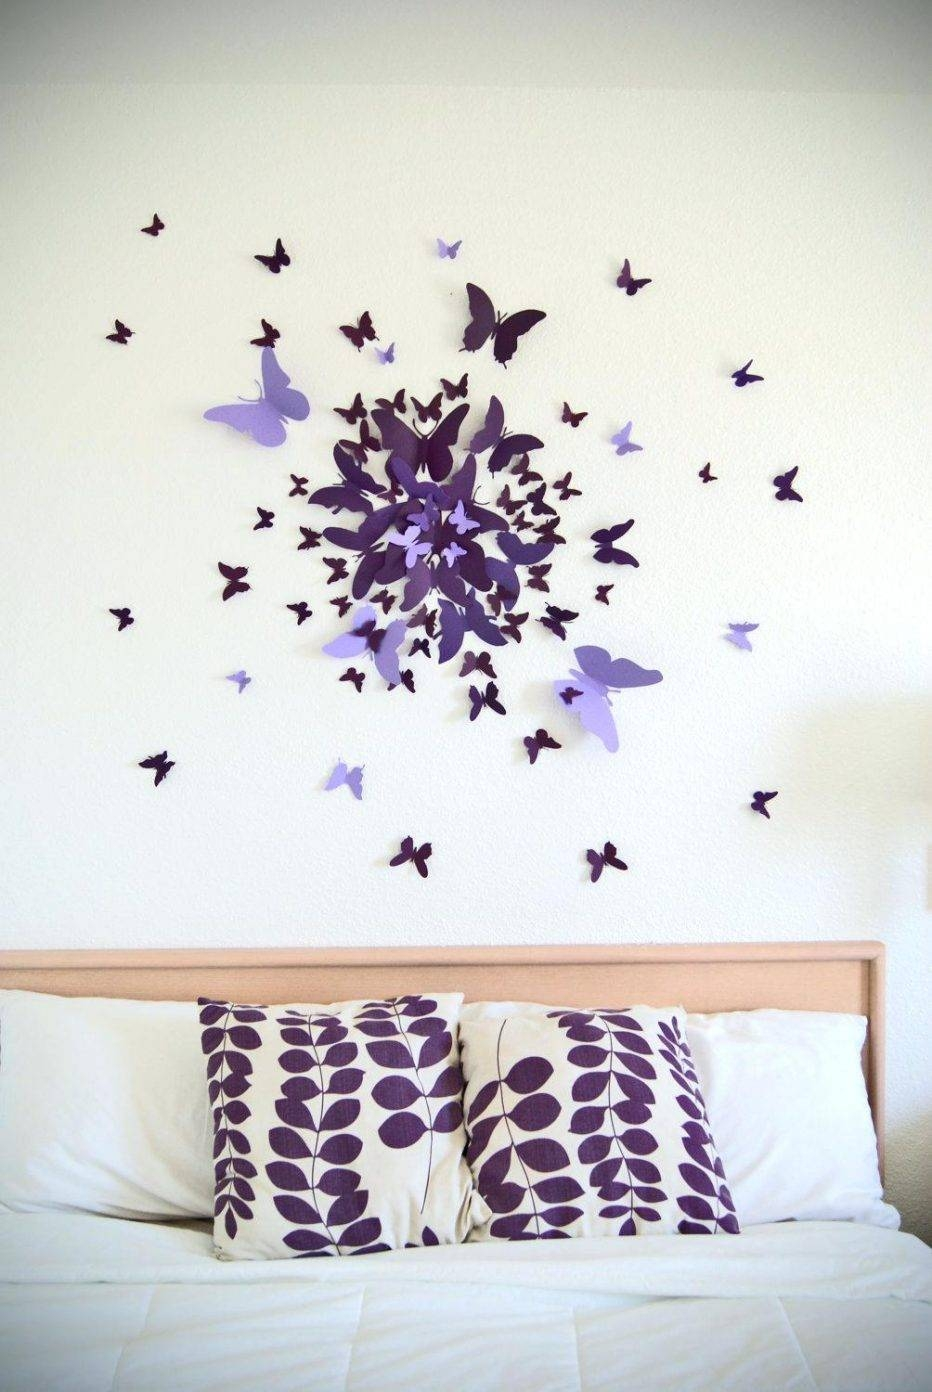 Wall Decor : 141 Large Metal Butterfly Wall Decor Innovative Throughout Most Recently Released Vintage 3D Wall Art (View 20 of 20)